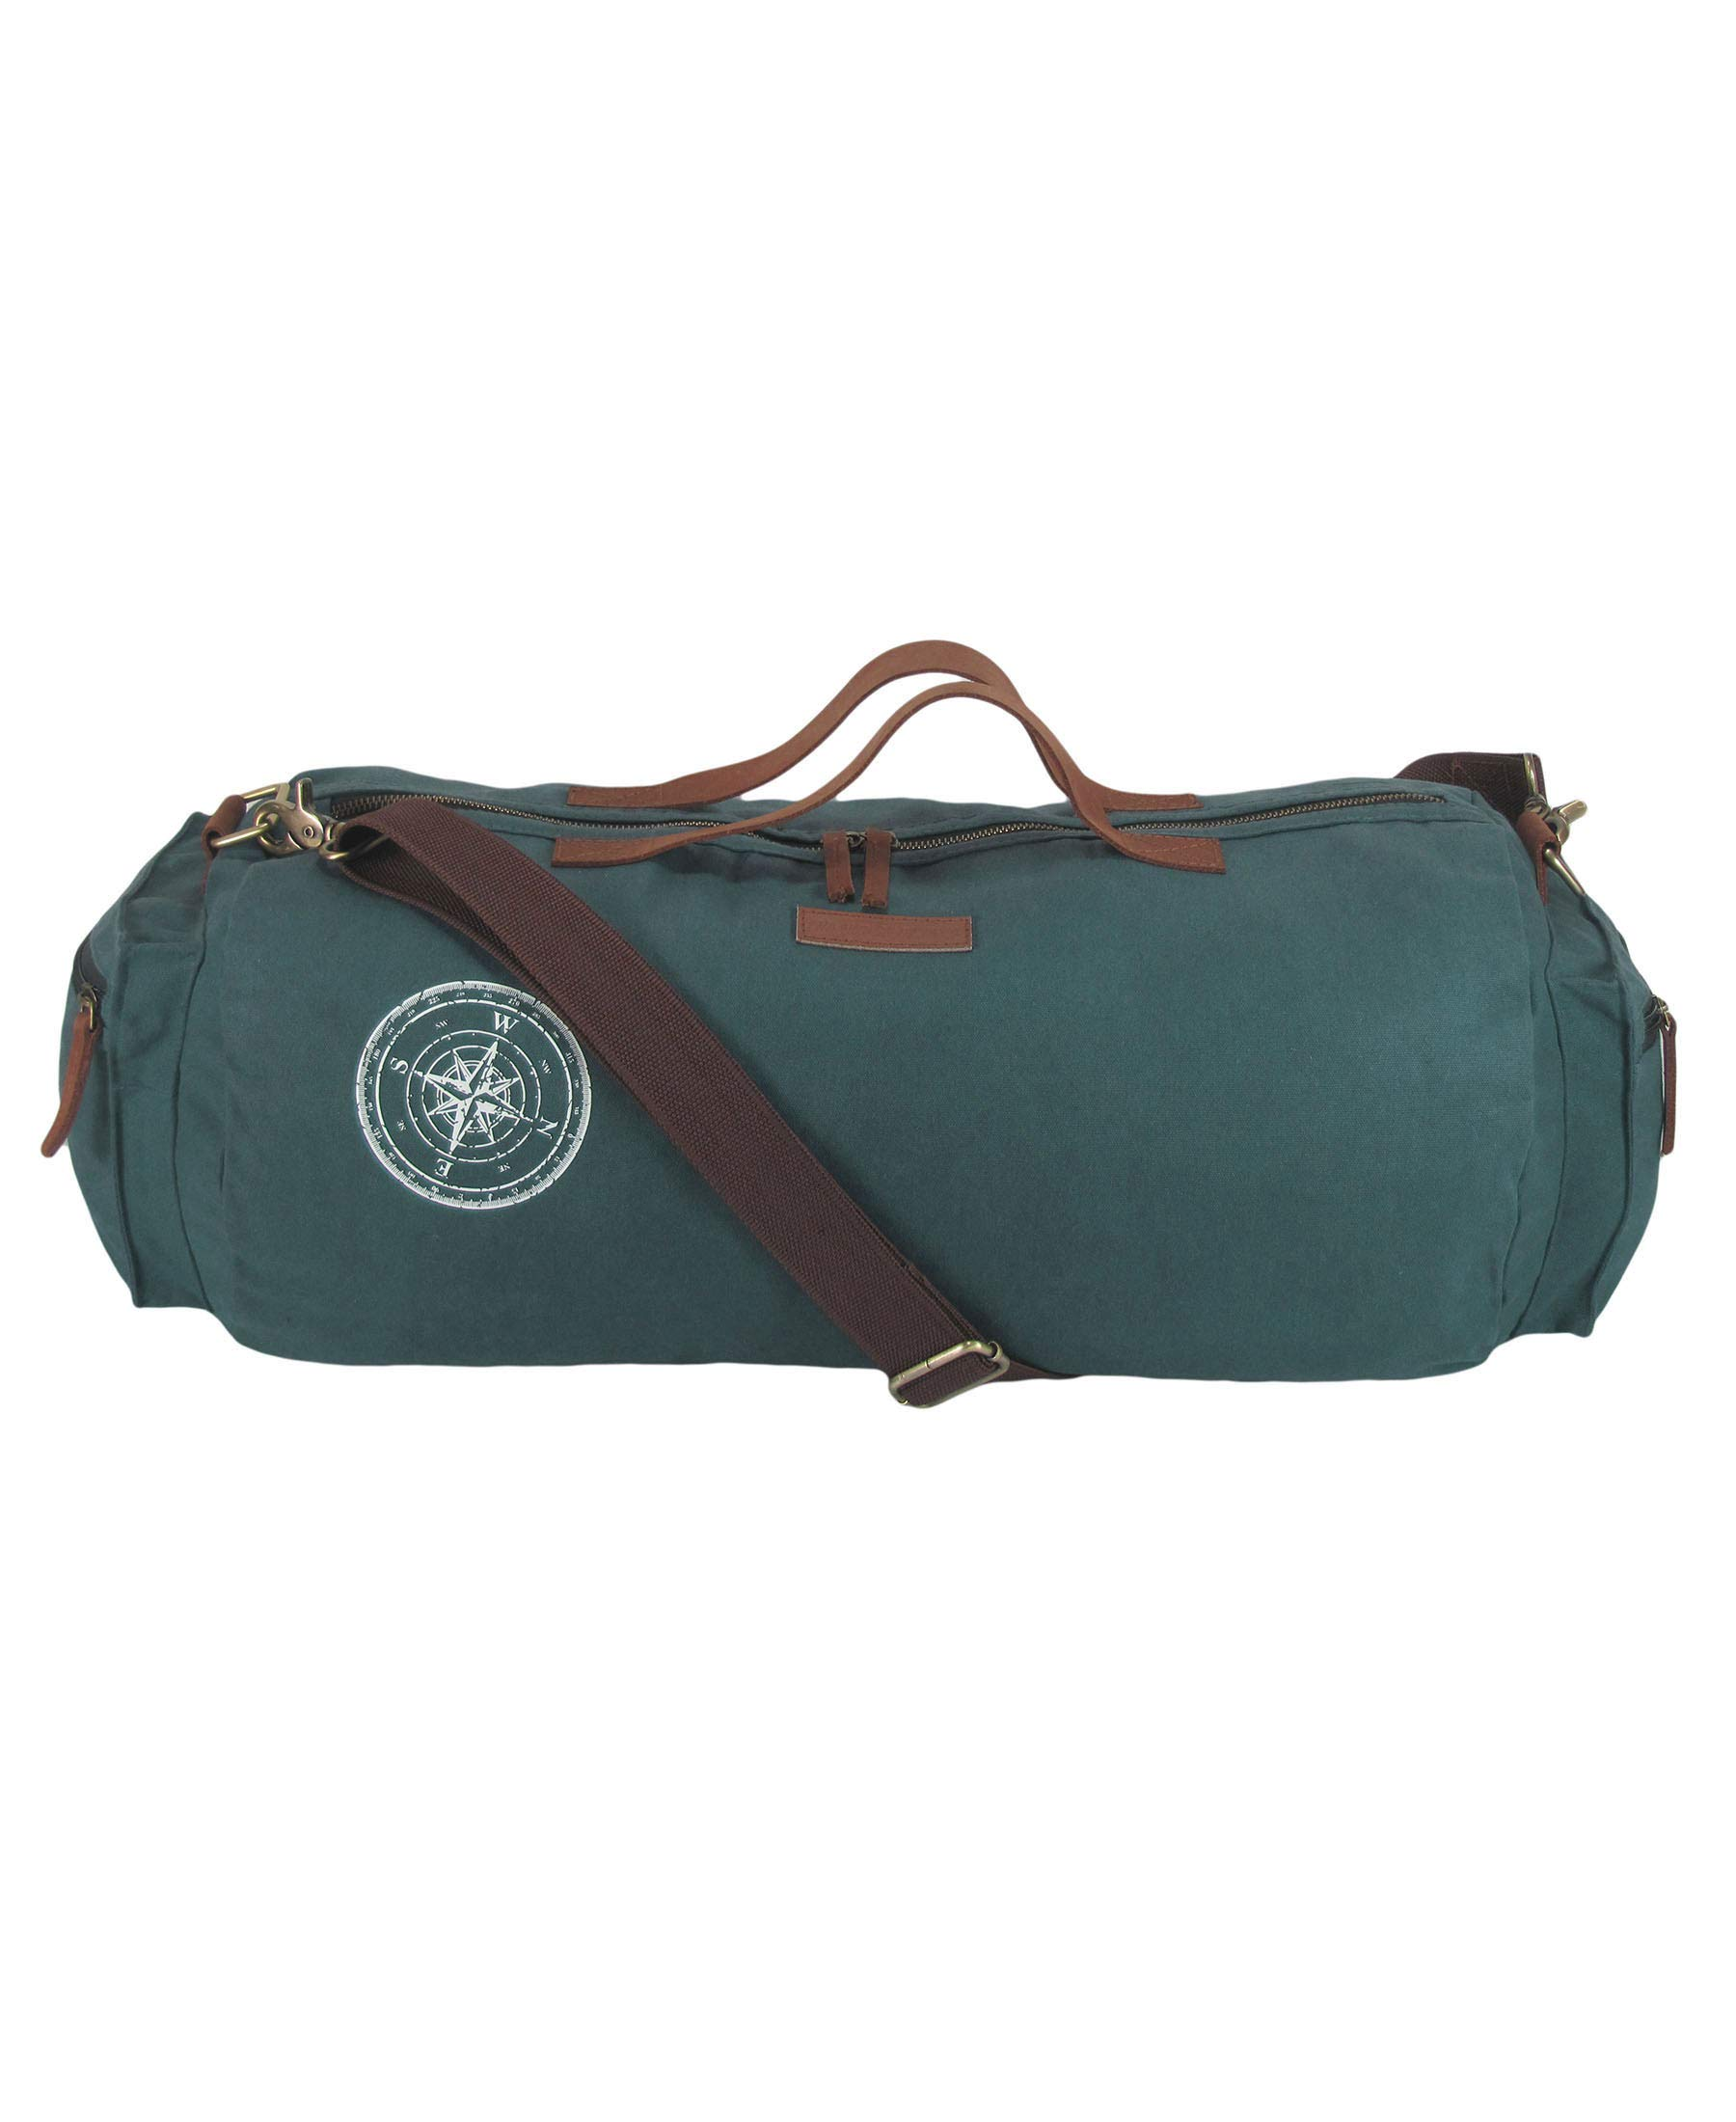 The House Of Tara Waxed Canvas Duffle, Gym Bag (Combat Blue) product image